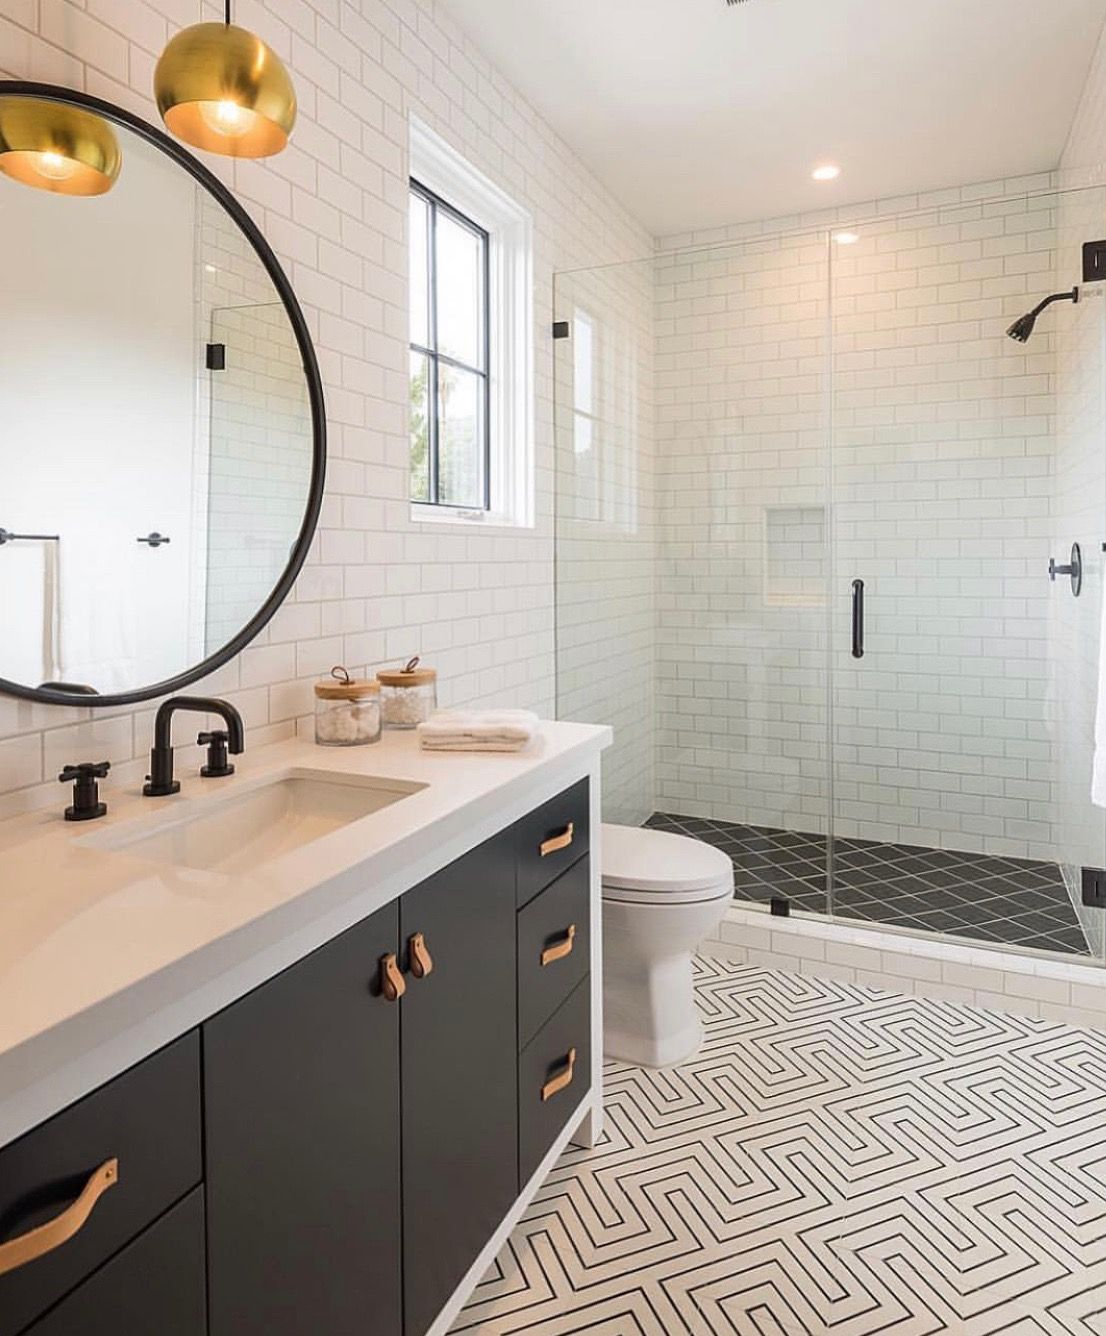 Best Designs For Very Small Condo: Amazing Floor Tile Pattern